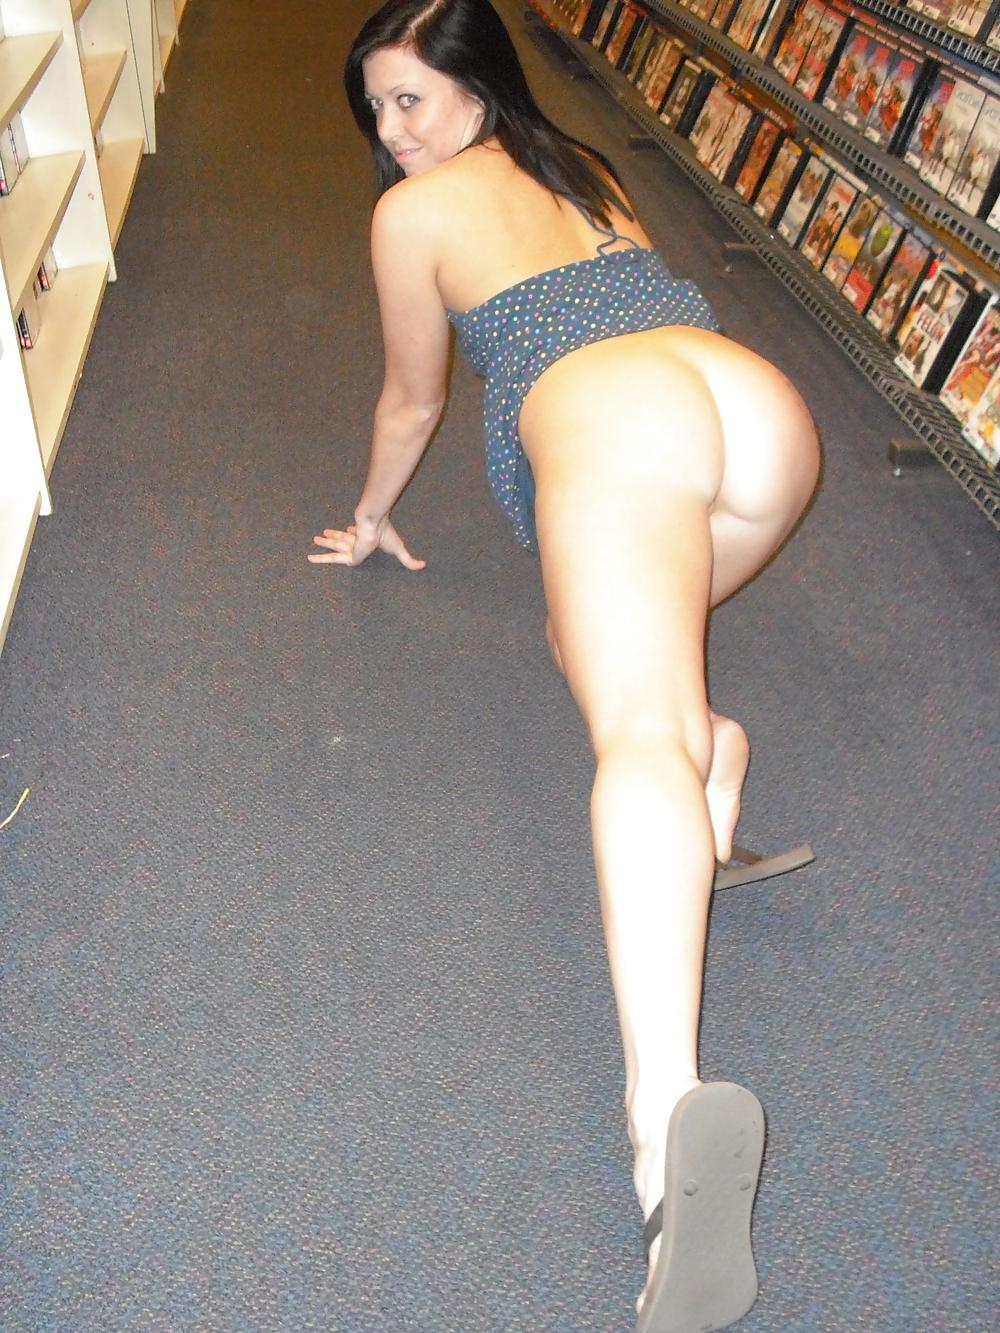 Adult video rental